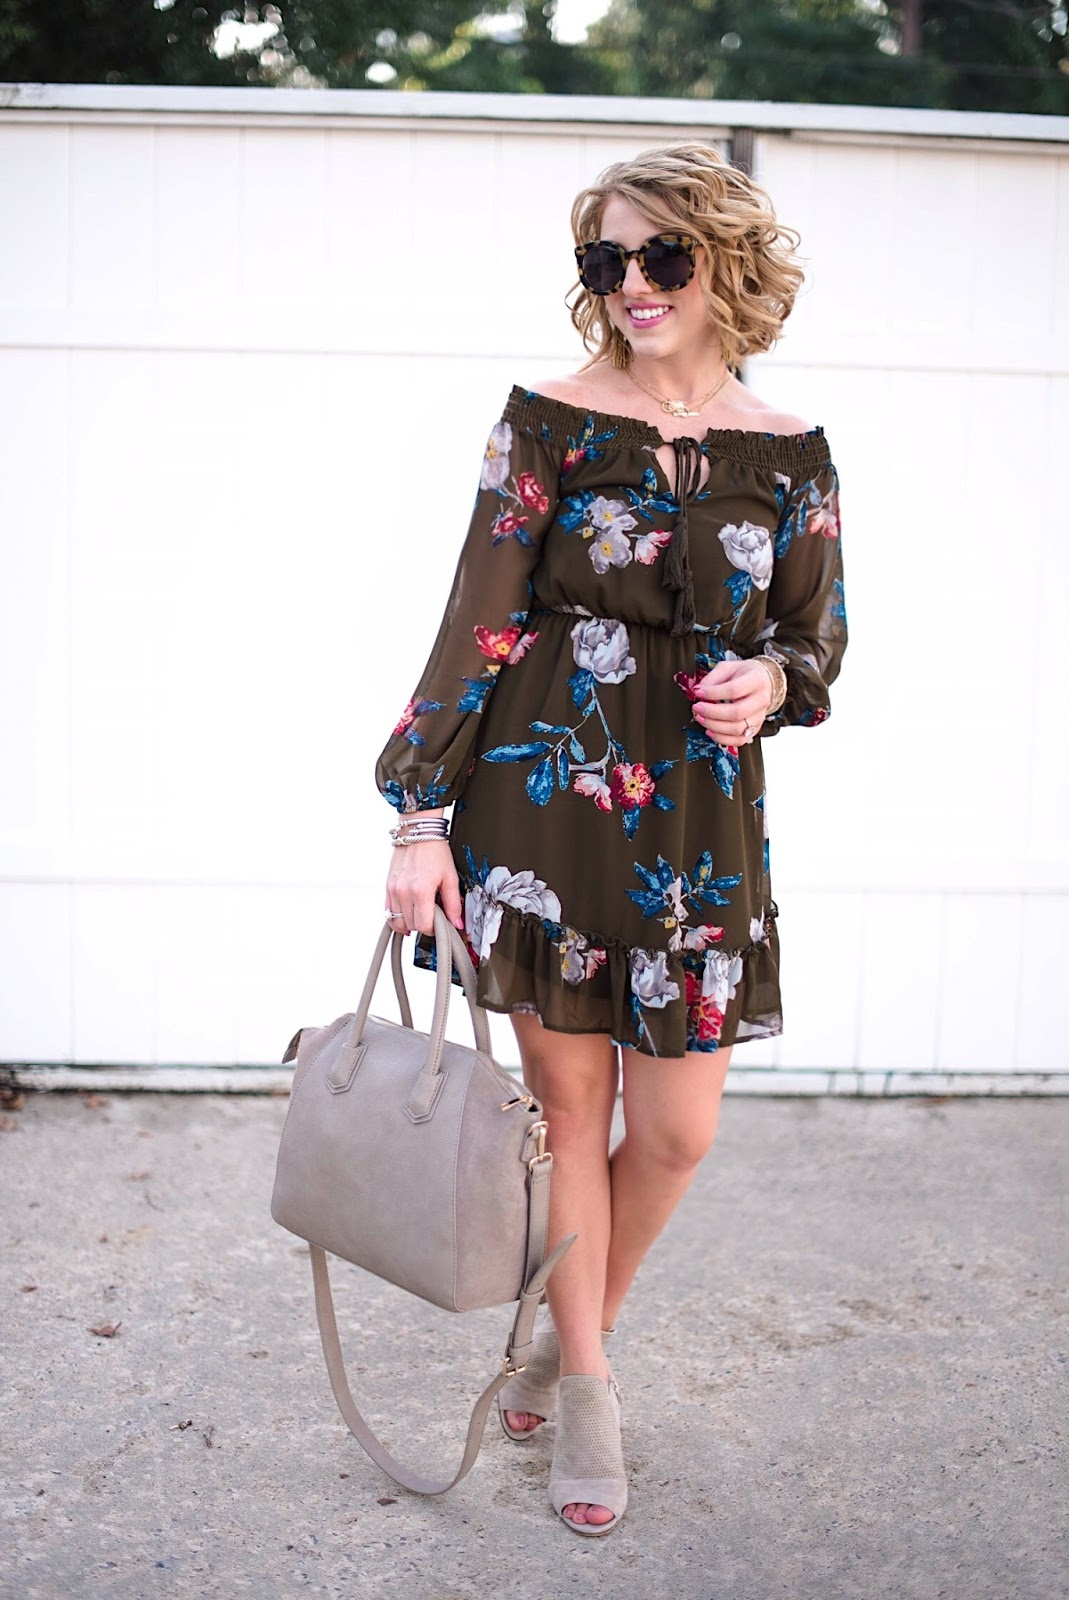 Transition to fall look - Click through to see more on Something Delightful Blog!